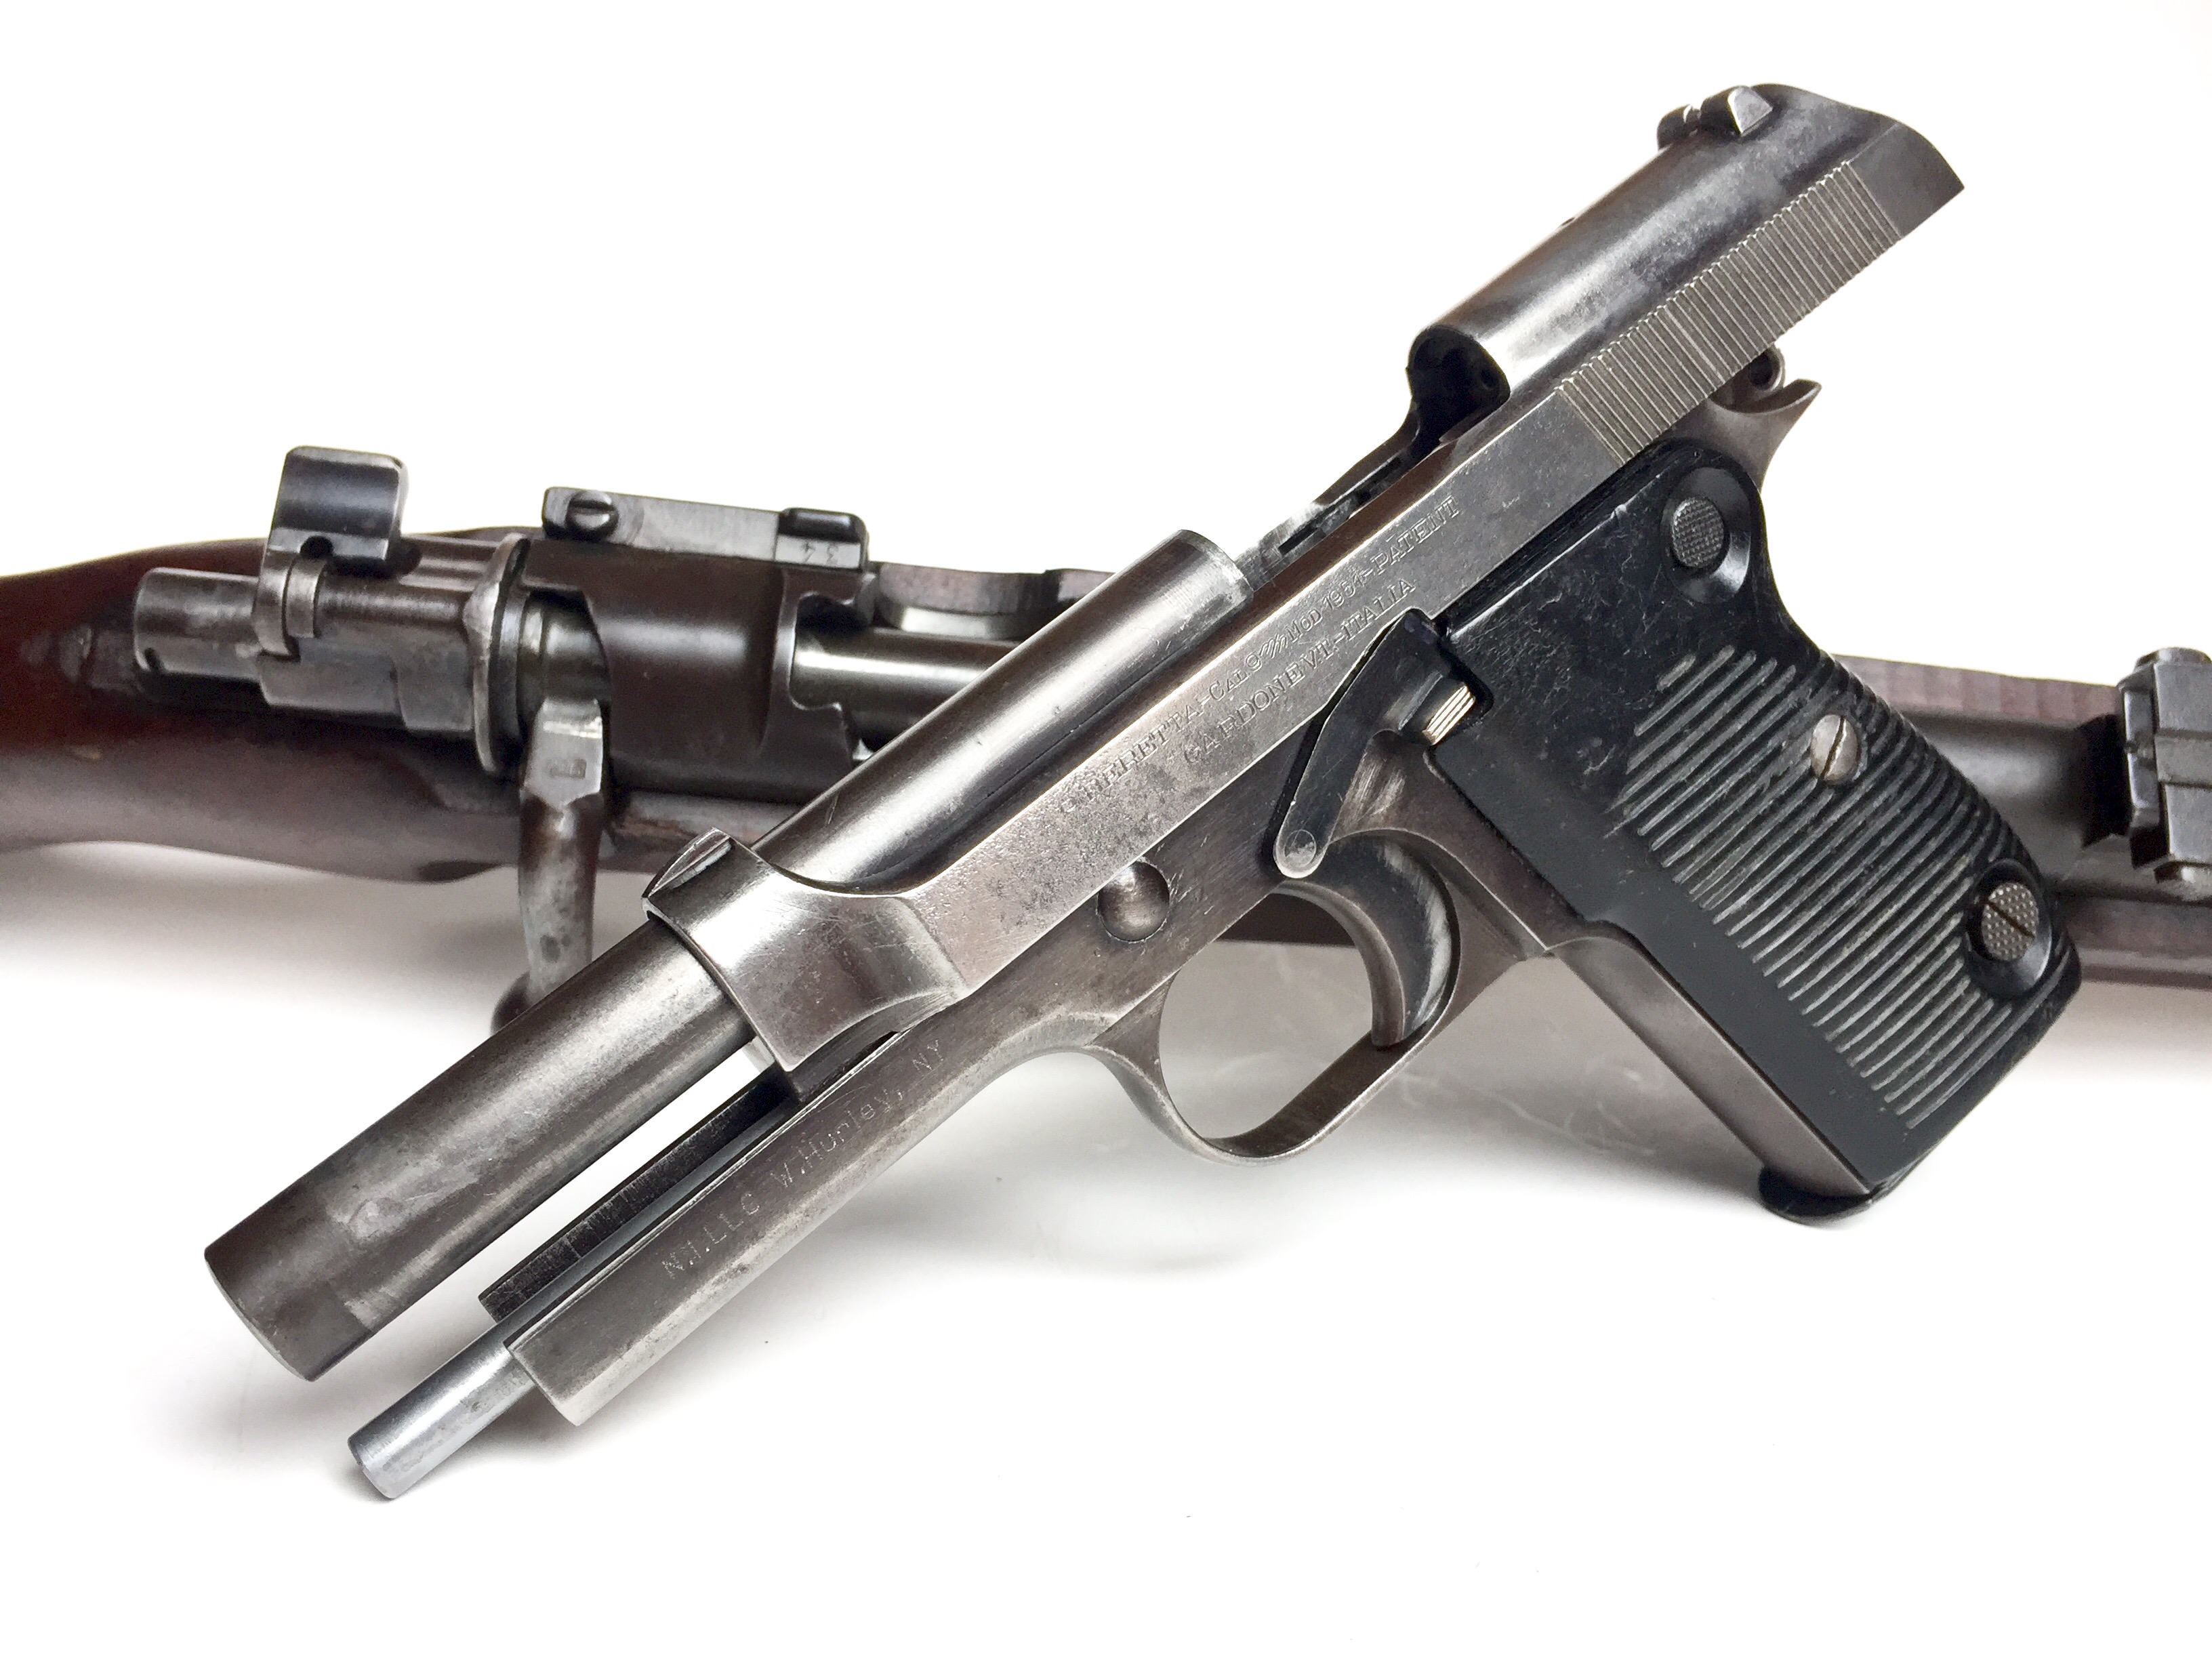 With the slide locked back the characteristic angle of the John M. Browning can be seen, This particular pistol is an Israeli model of the M1951. (Picture courtesy myvimu.com).